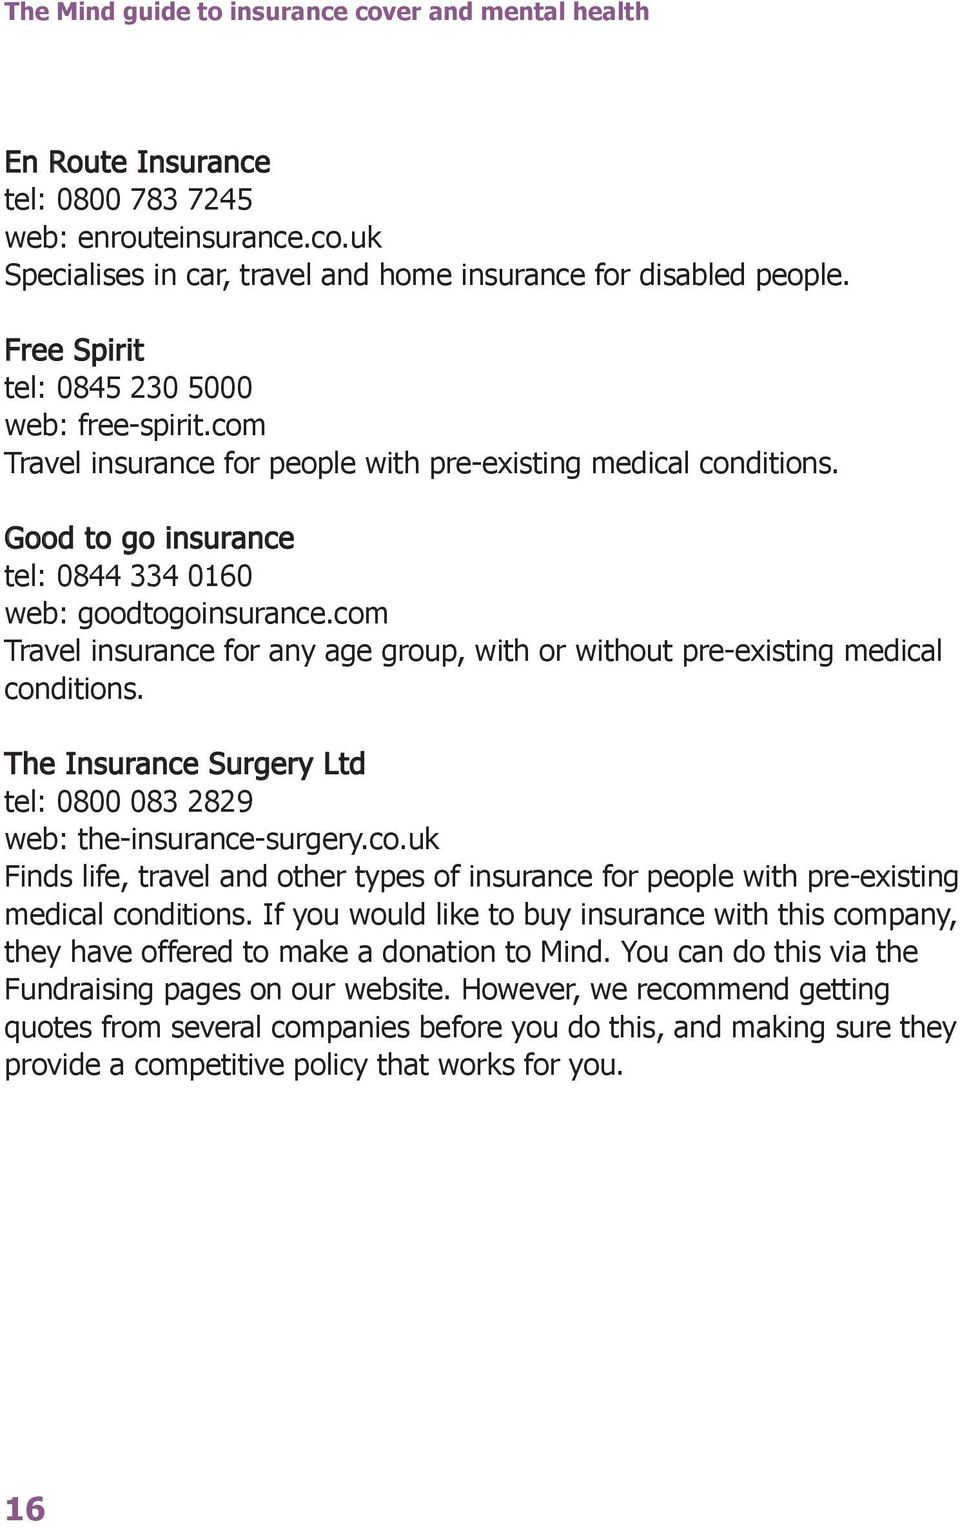 com Travel insurance for any age group, with or without pre-existing medical conditions. The Insurance Surgery Ltd tel: 0800 083 2829 web: the-insurance-surgery.co.uk Finds life, travel and other types of insurance for people with pre-existing medical conditions.